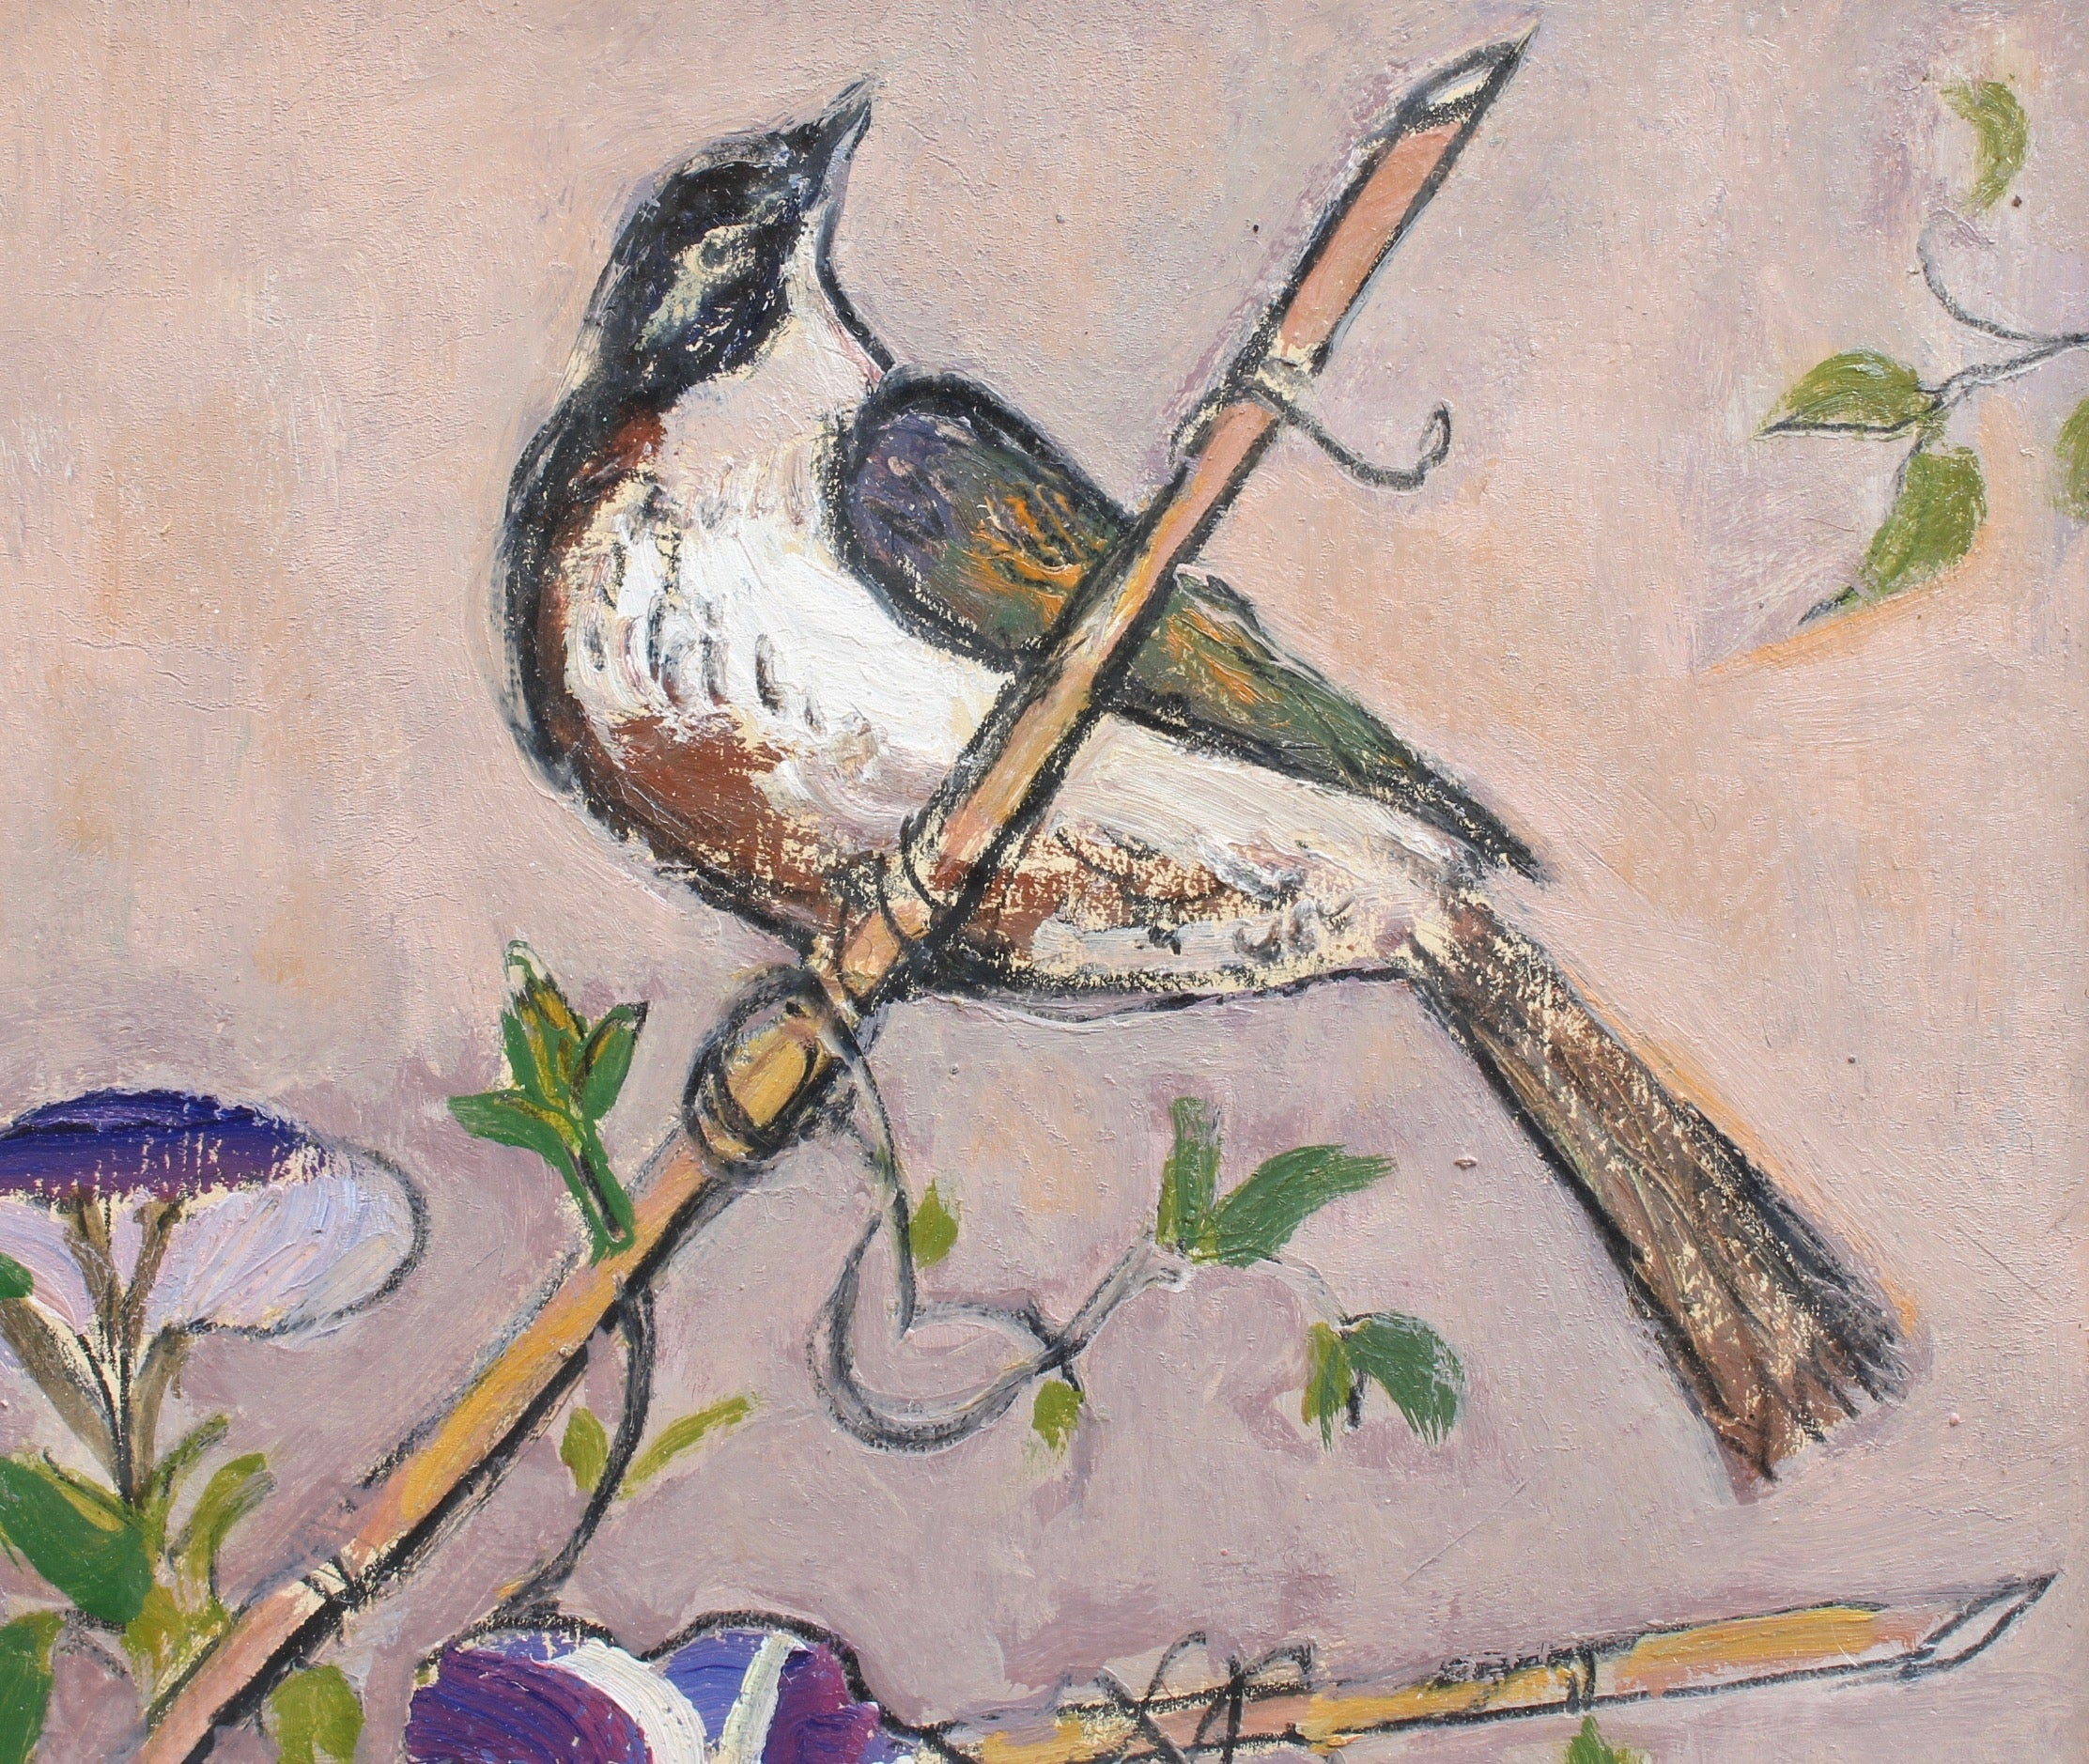 'Bunting on a Bamboo Cane' by David McClure, RSA RSW RGI (circa 1980s - 1990s)